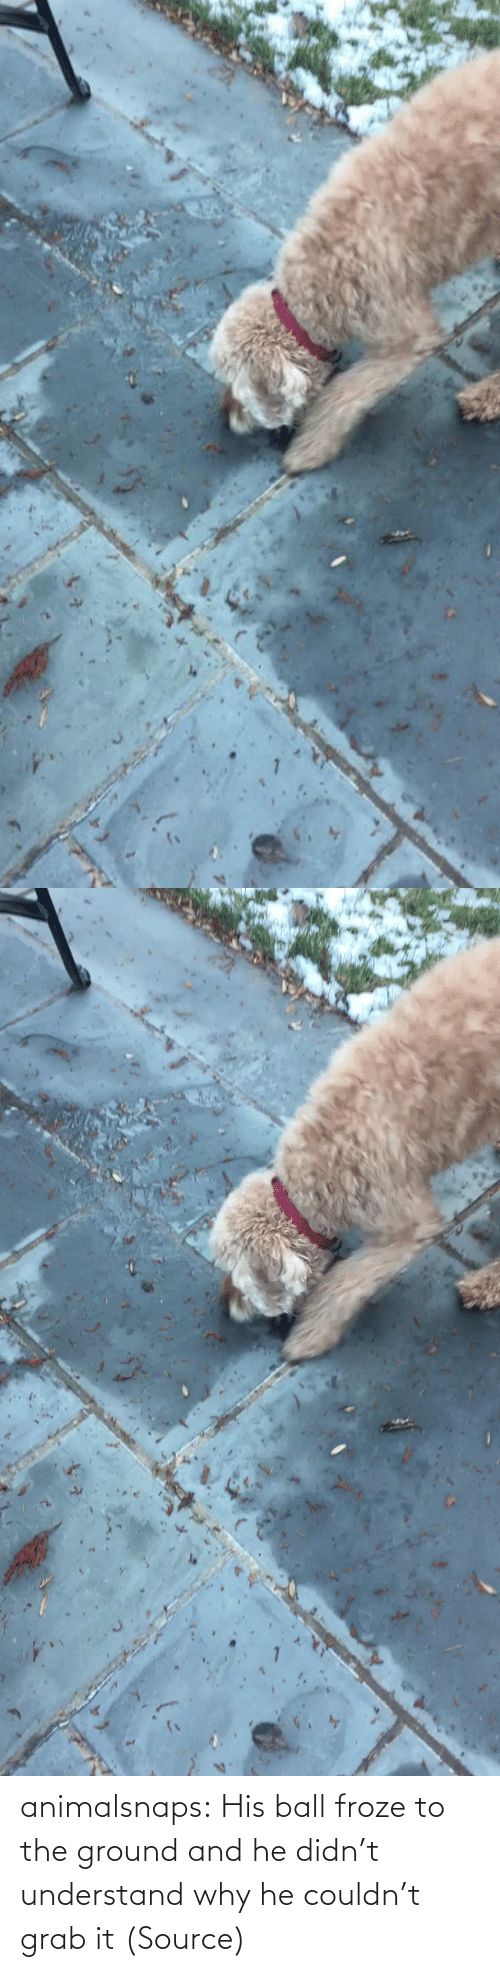 Didnt: animalsnaps:  His ball froze to the ground and he didn't understand why he couldn't grab it (Source)